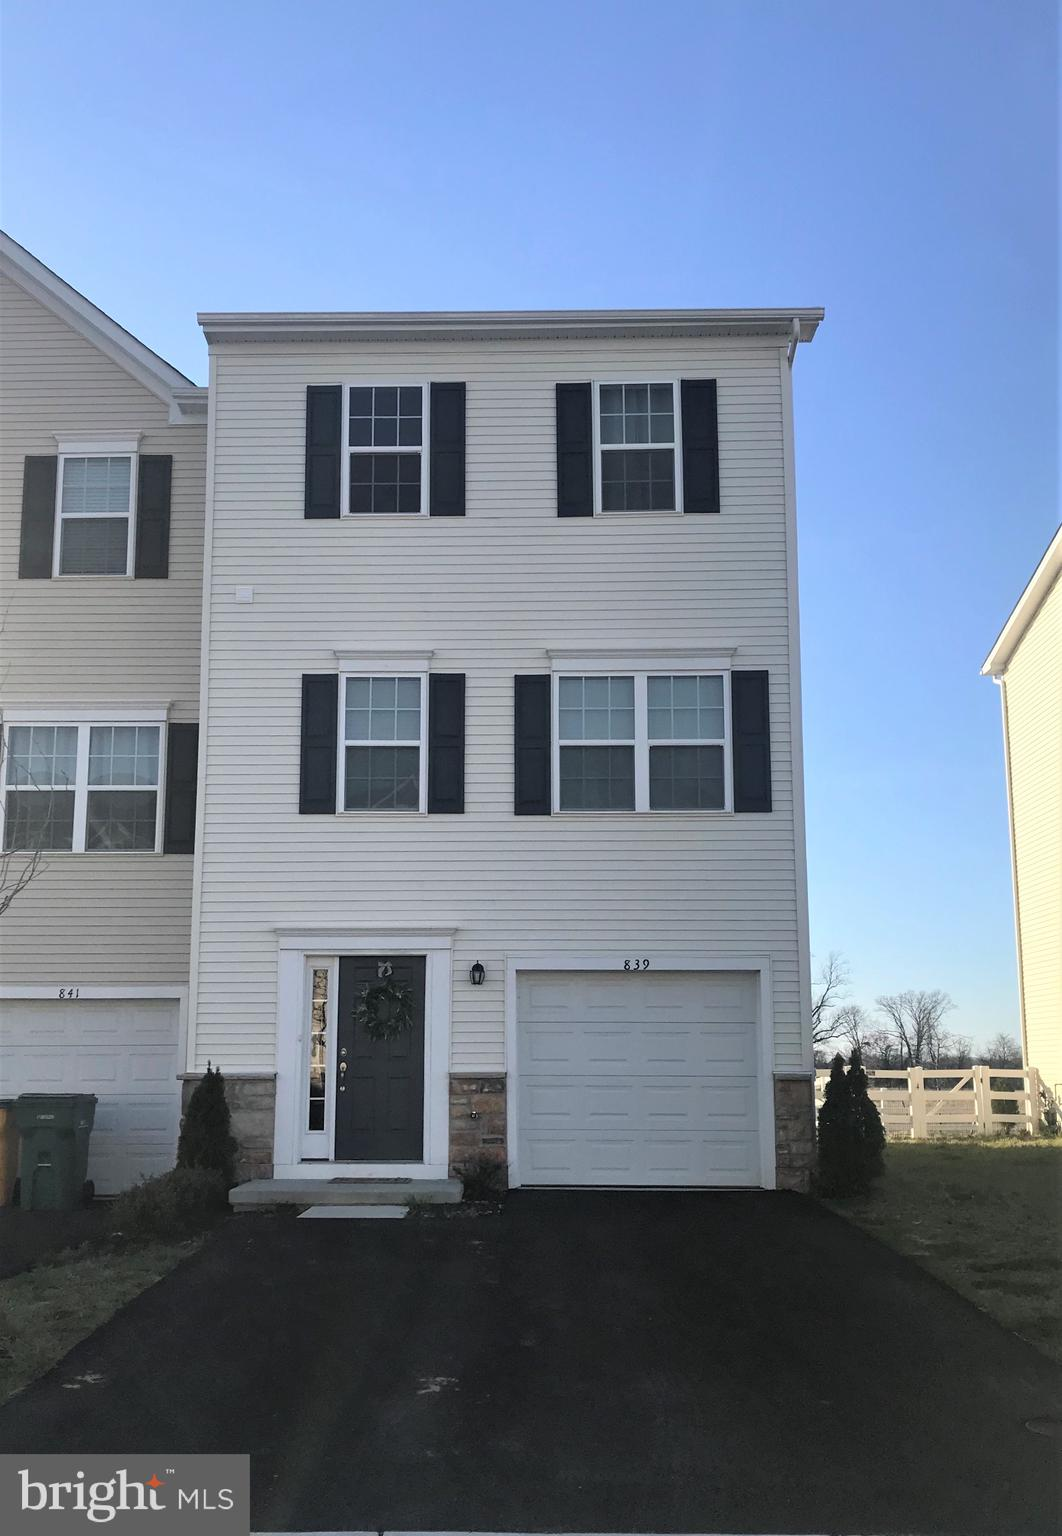 "Gorgeous townhome in the desireable neighborhood of Hyetts Crossing in Middletown. This home was built in 2017 and features 3 bedrooms 2 1/2 baths, finished first floor with walkout slider to fenced spacous rear yard. Large master bedroom with walk in closet and master bath. Gorgeous wood wide plank floors on first and second levels. Beautiful kitchen features 42"" cabinets with grainite and a large island. This one will not last schedule your appointment today!"